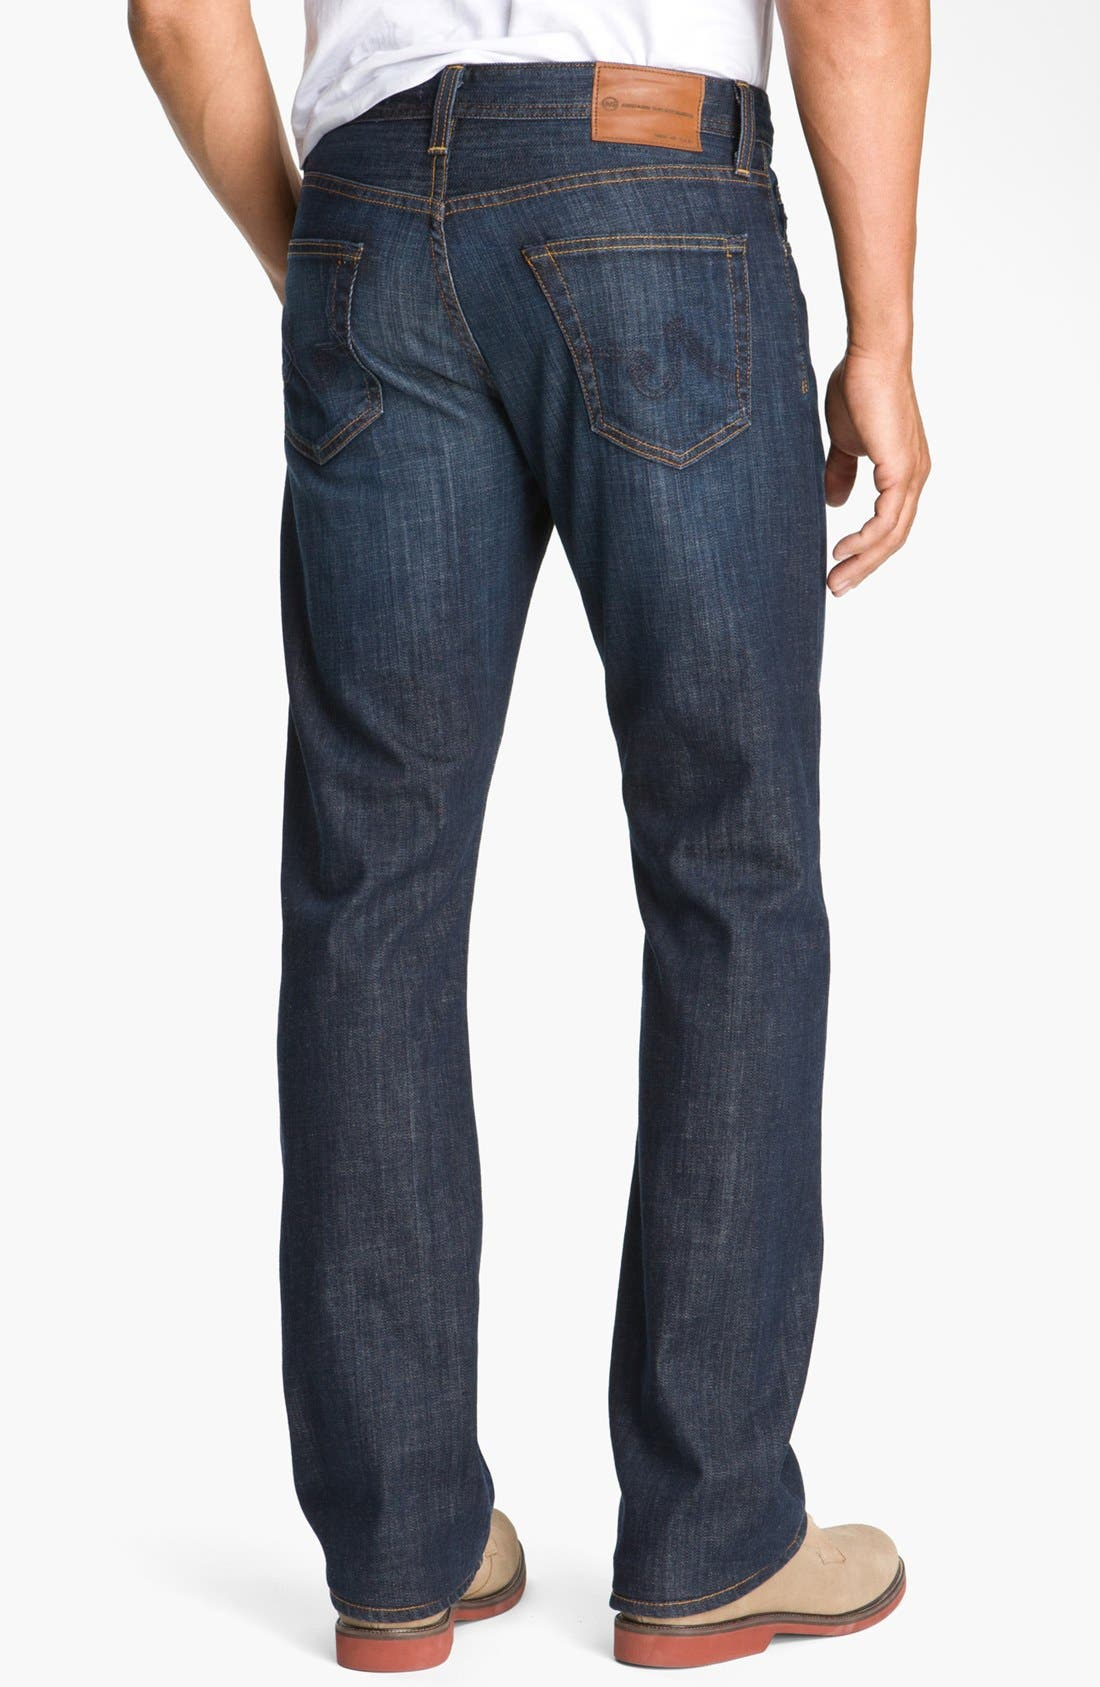 Protégé Straight Leg Jeans,                             Alternate thumbnail 2, color,                             Hunts Wash